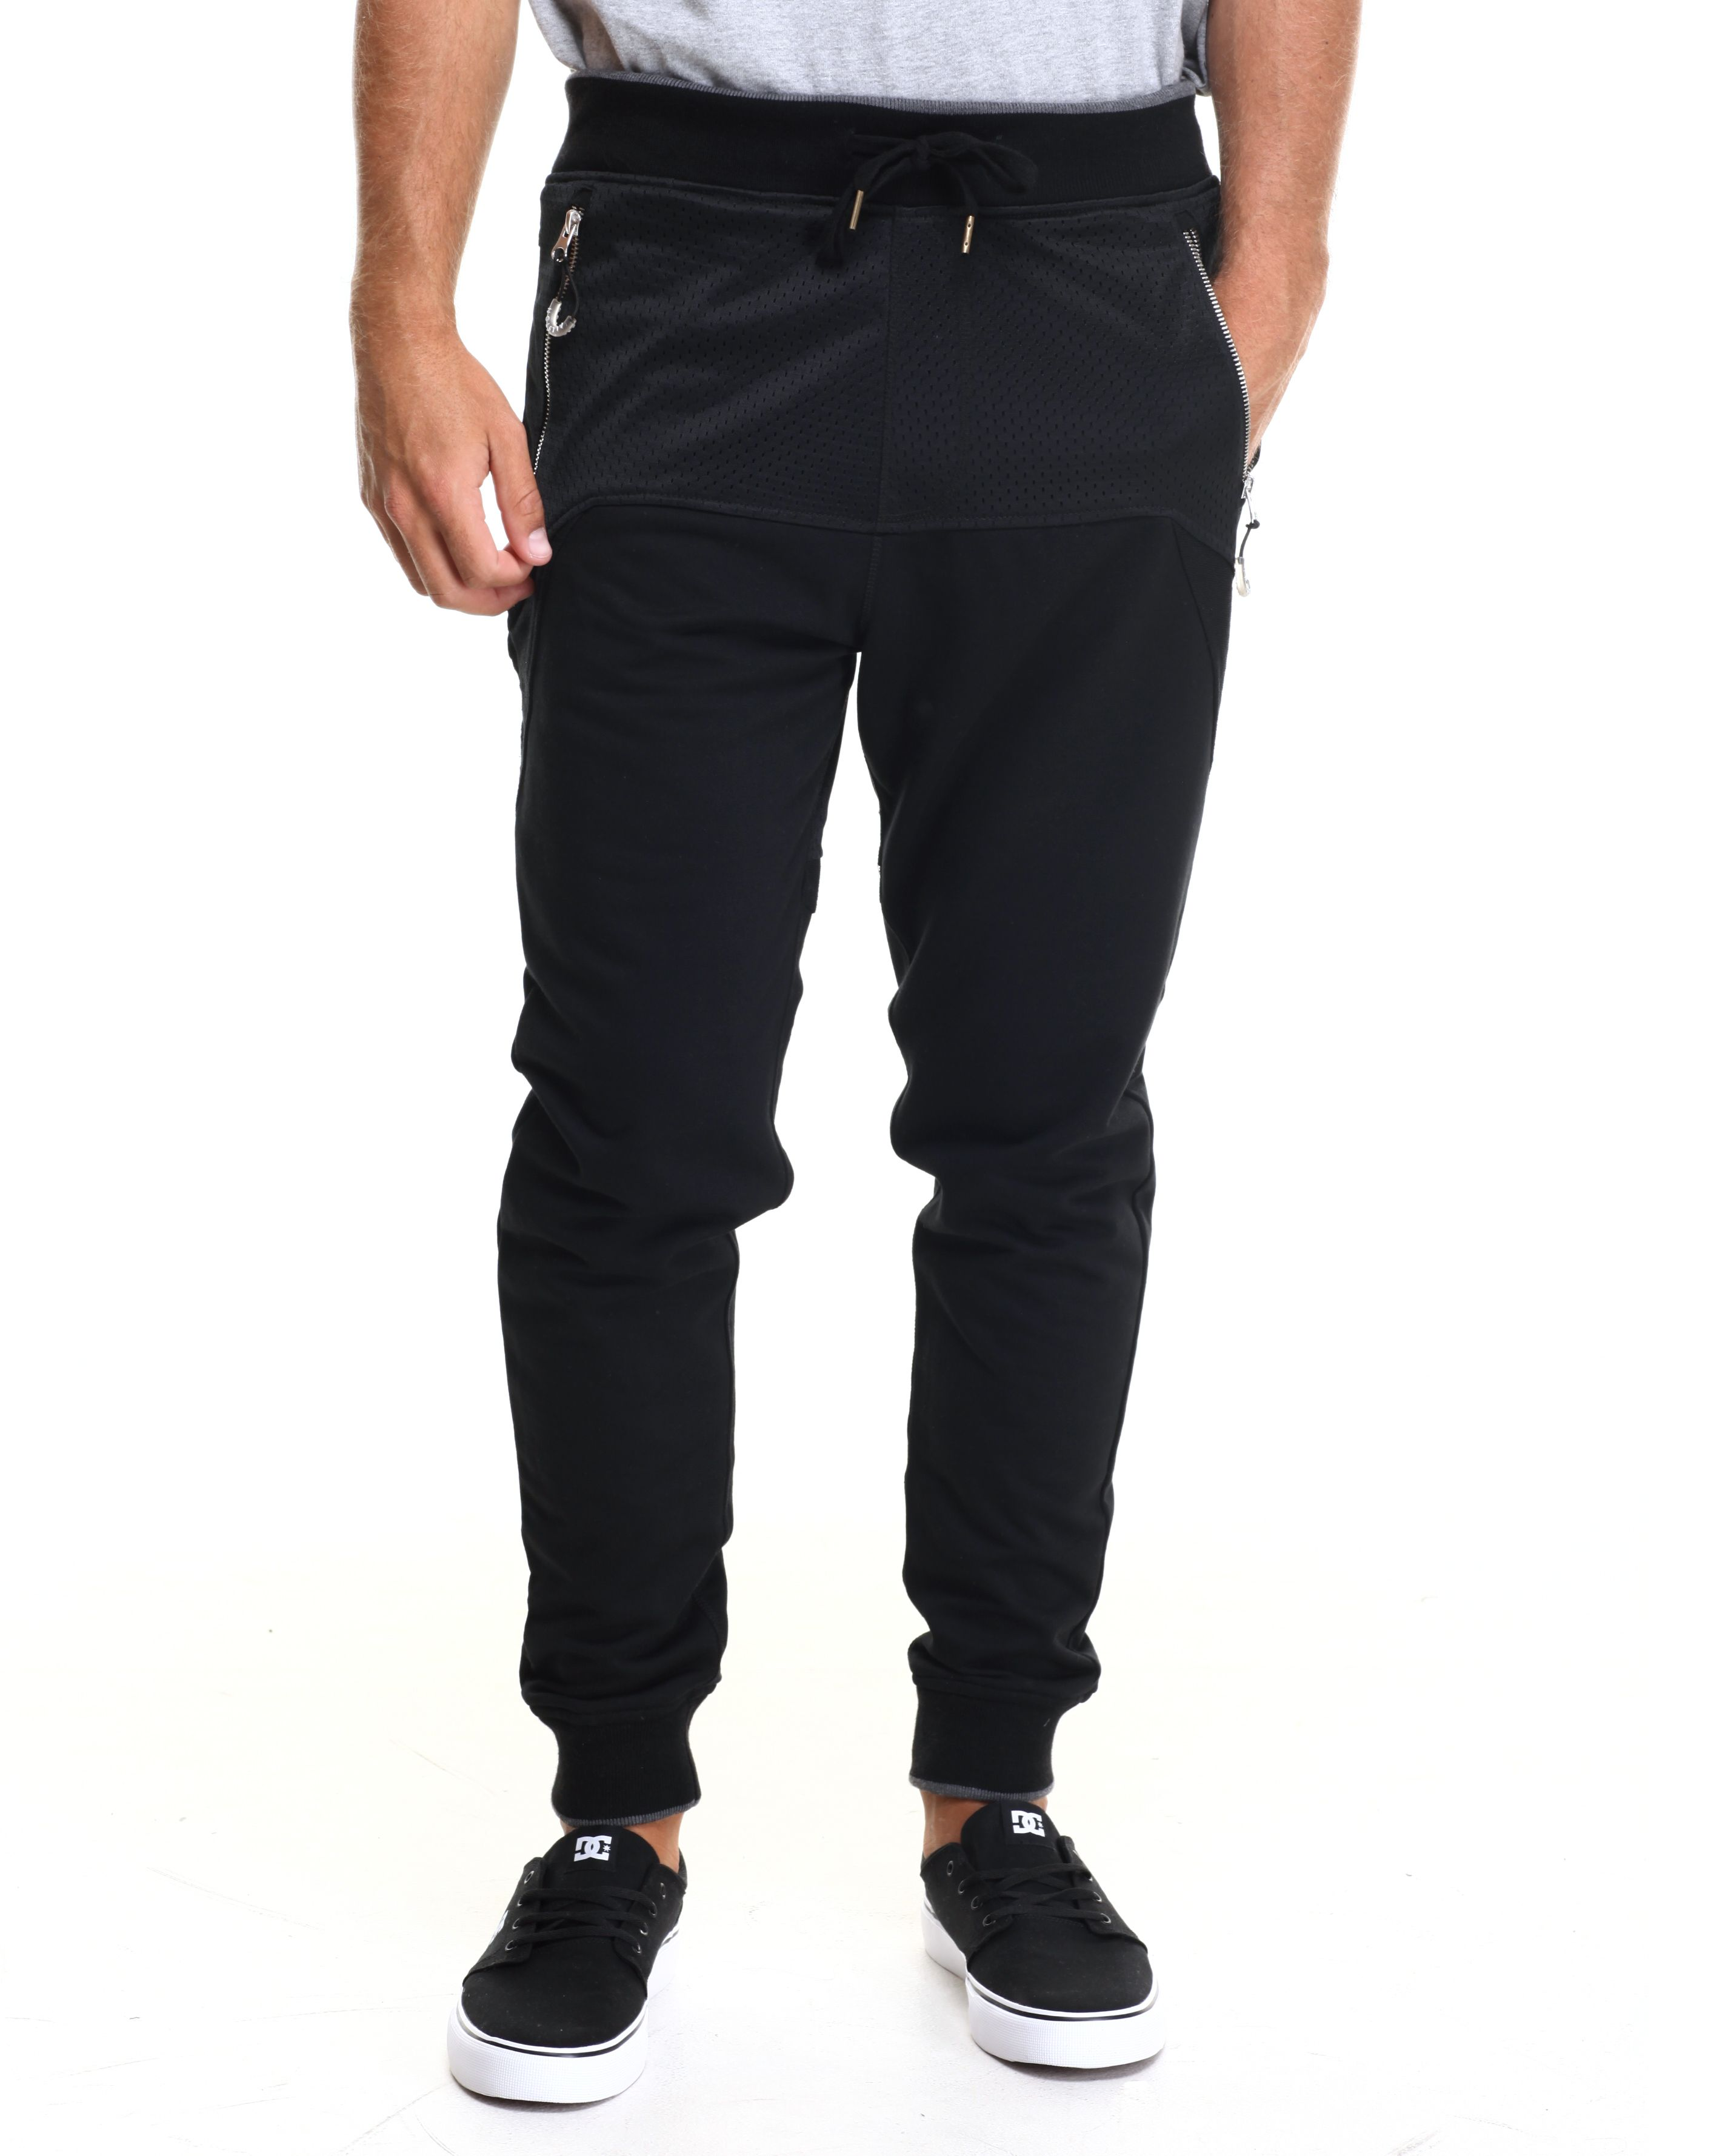 Mesh french terry joggers from allston outfitter with